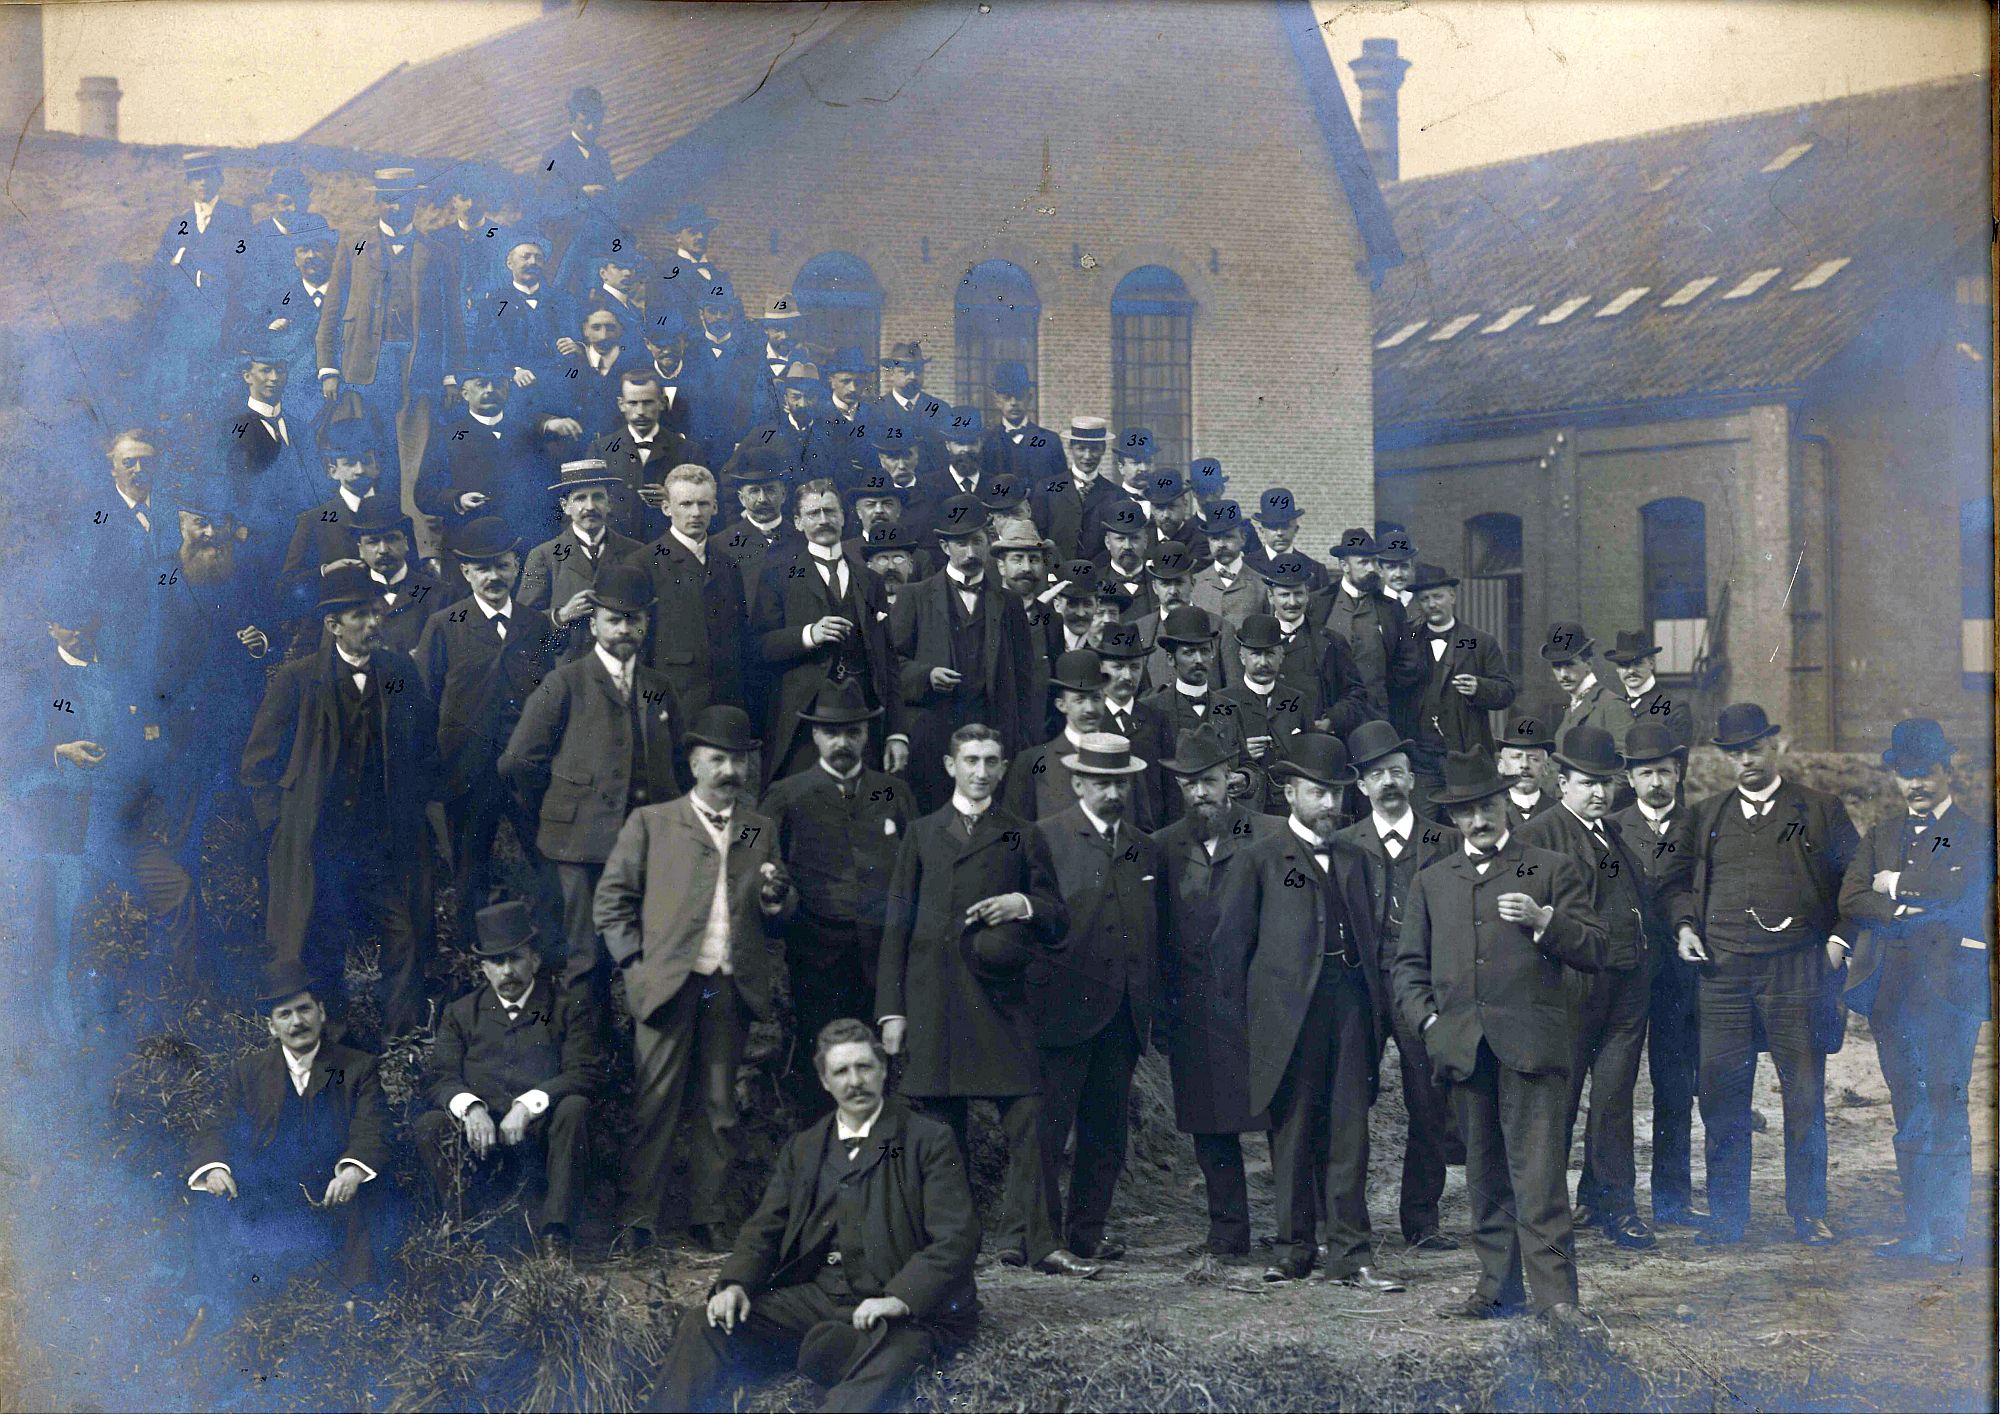 Bezoek Koninklijk Instituut van Ingenieurs aan Smit Slikkerveer 1903